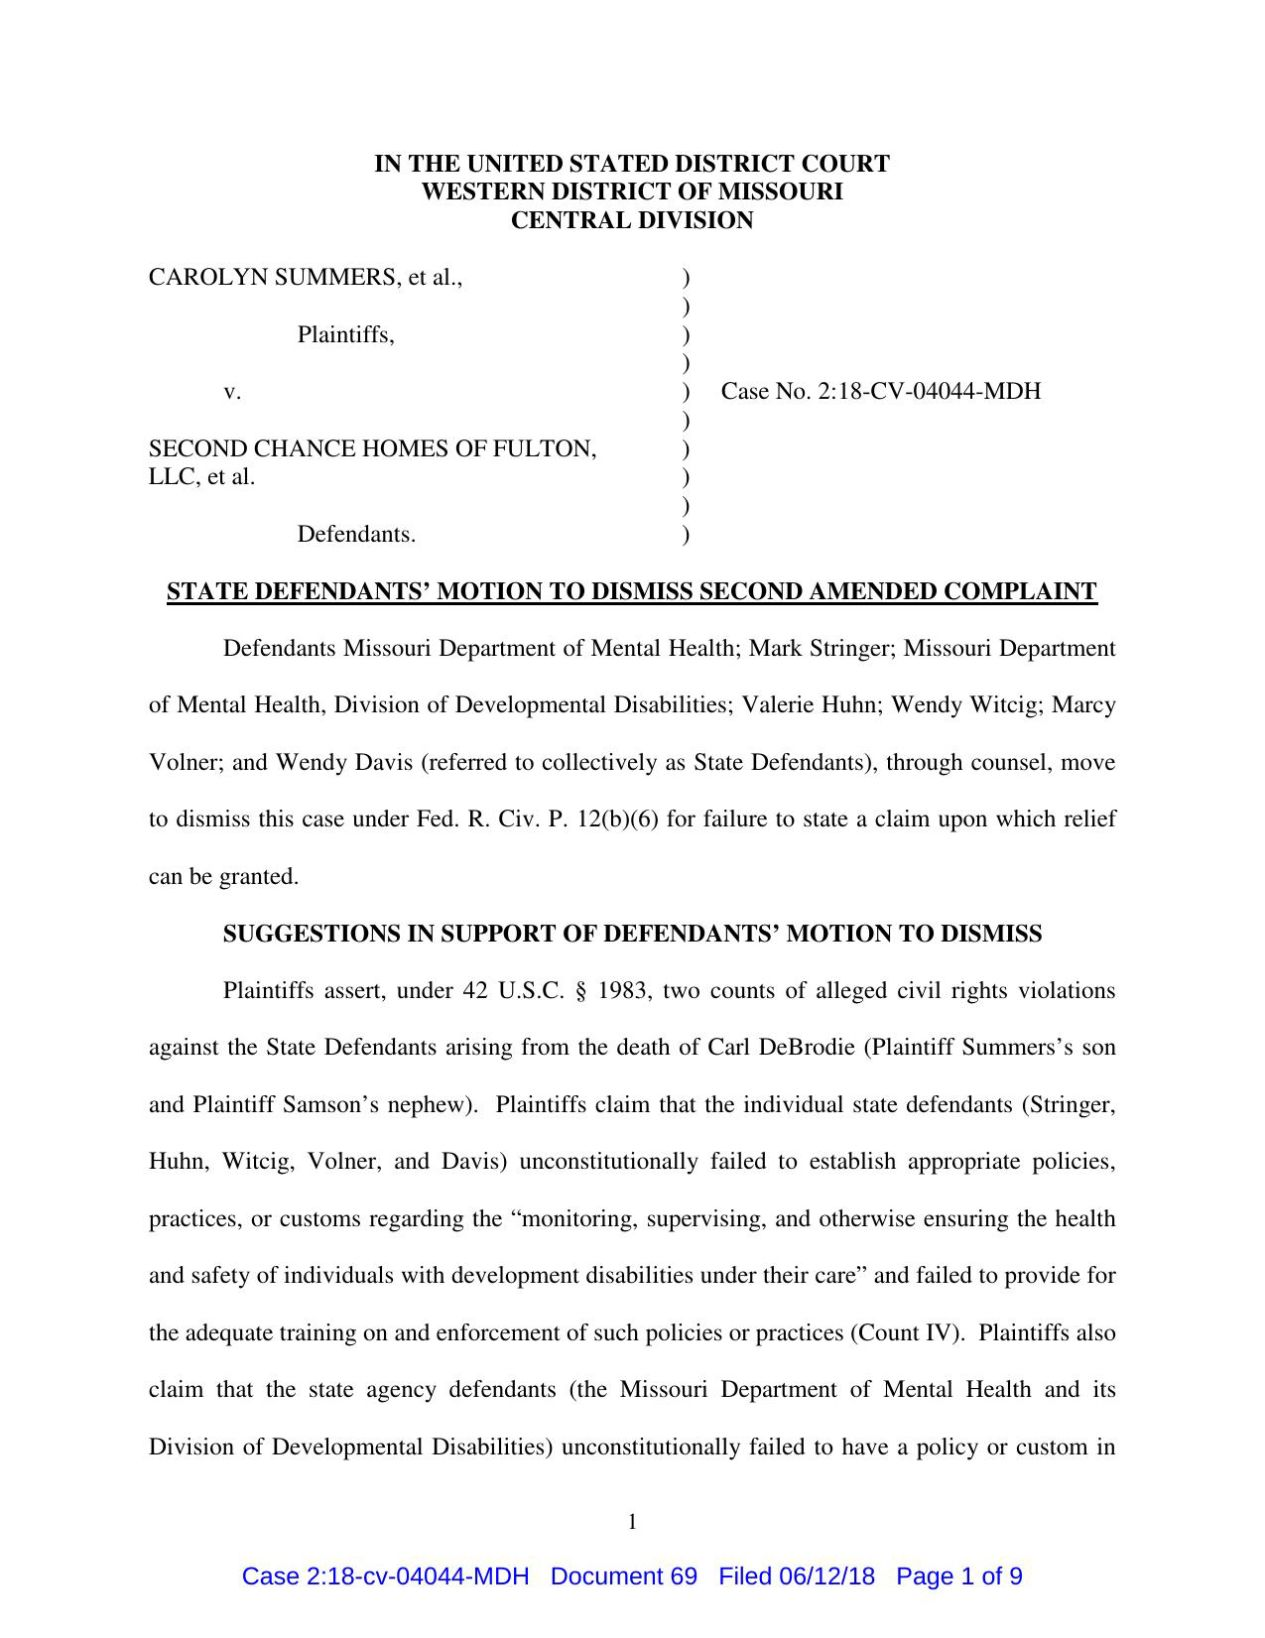 Hawley Motion to Dismiss, June 12, 2018